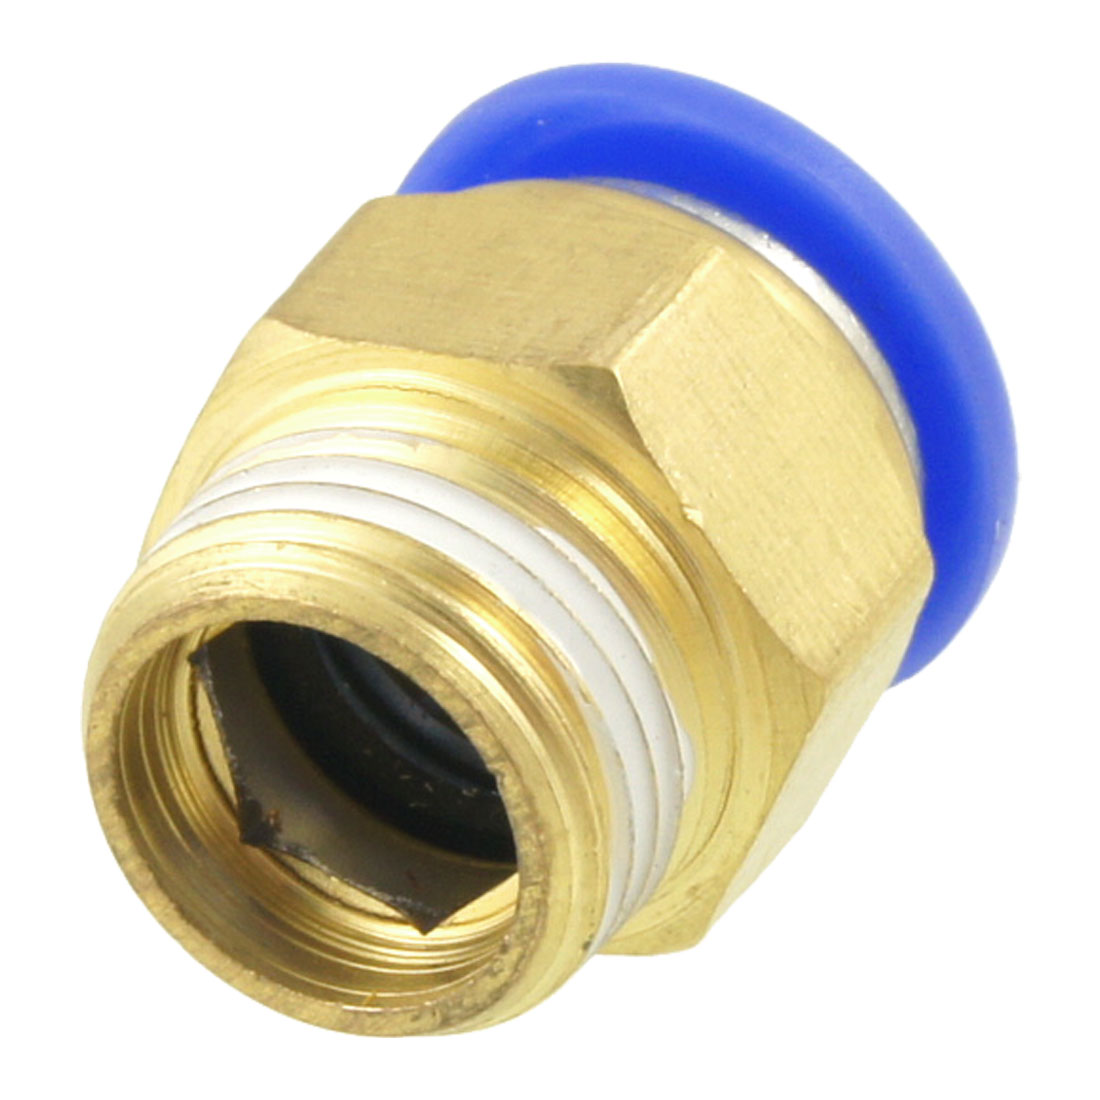 12mm Tube Pneumatic Air Tubing Push-to-Connect Quick Fittings